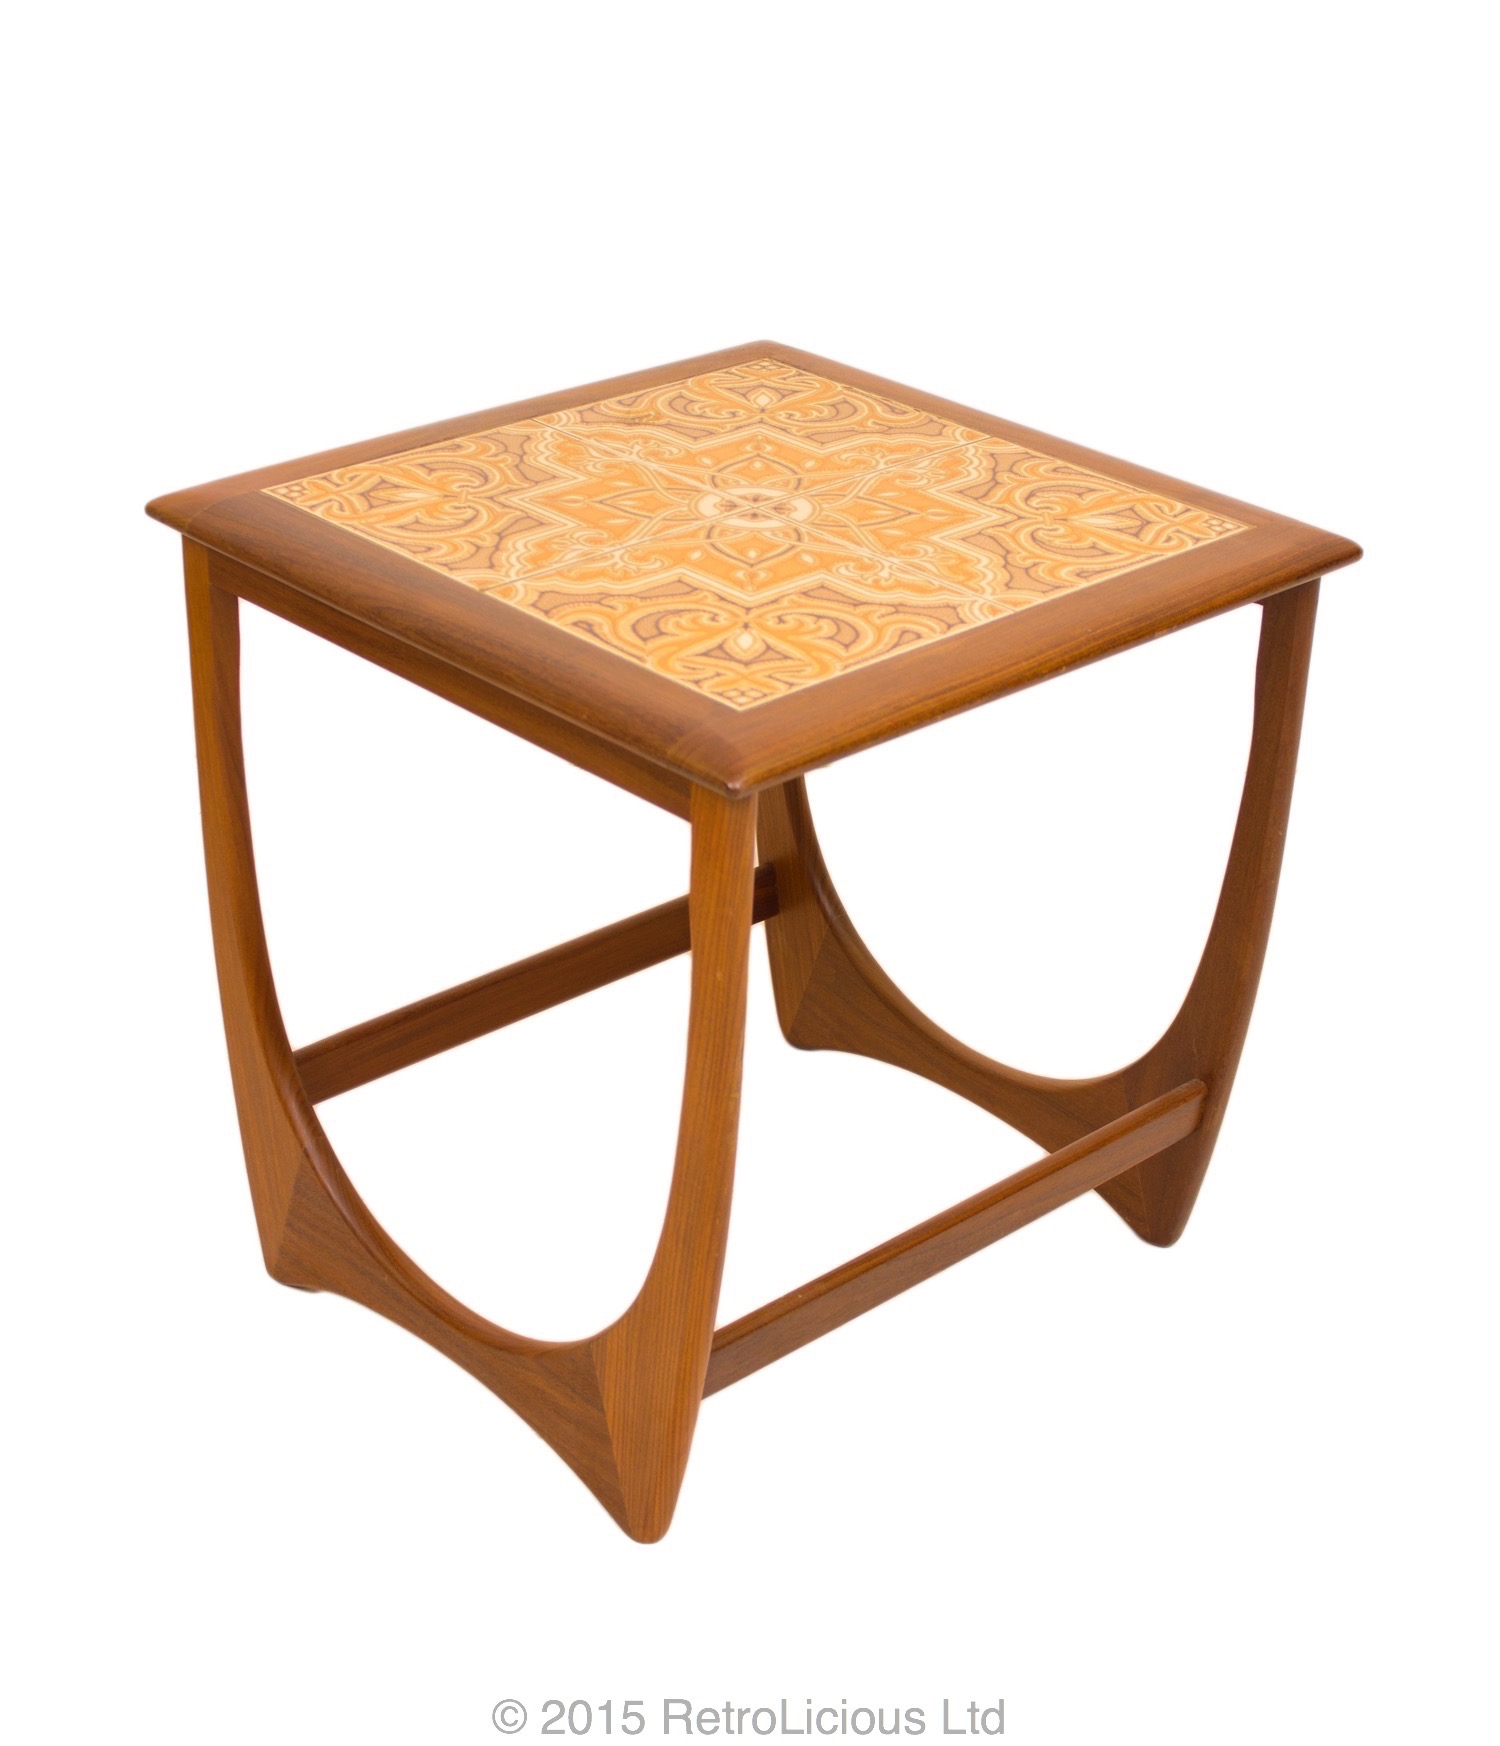 blue table mexican top small mosaic outdoor side chantel engaging diy ceramic moroccan tile tables full size hampton bay wicker patio furniture uttermost samuelle wooden end whole